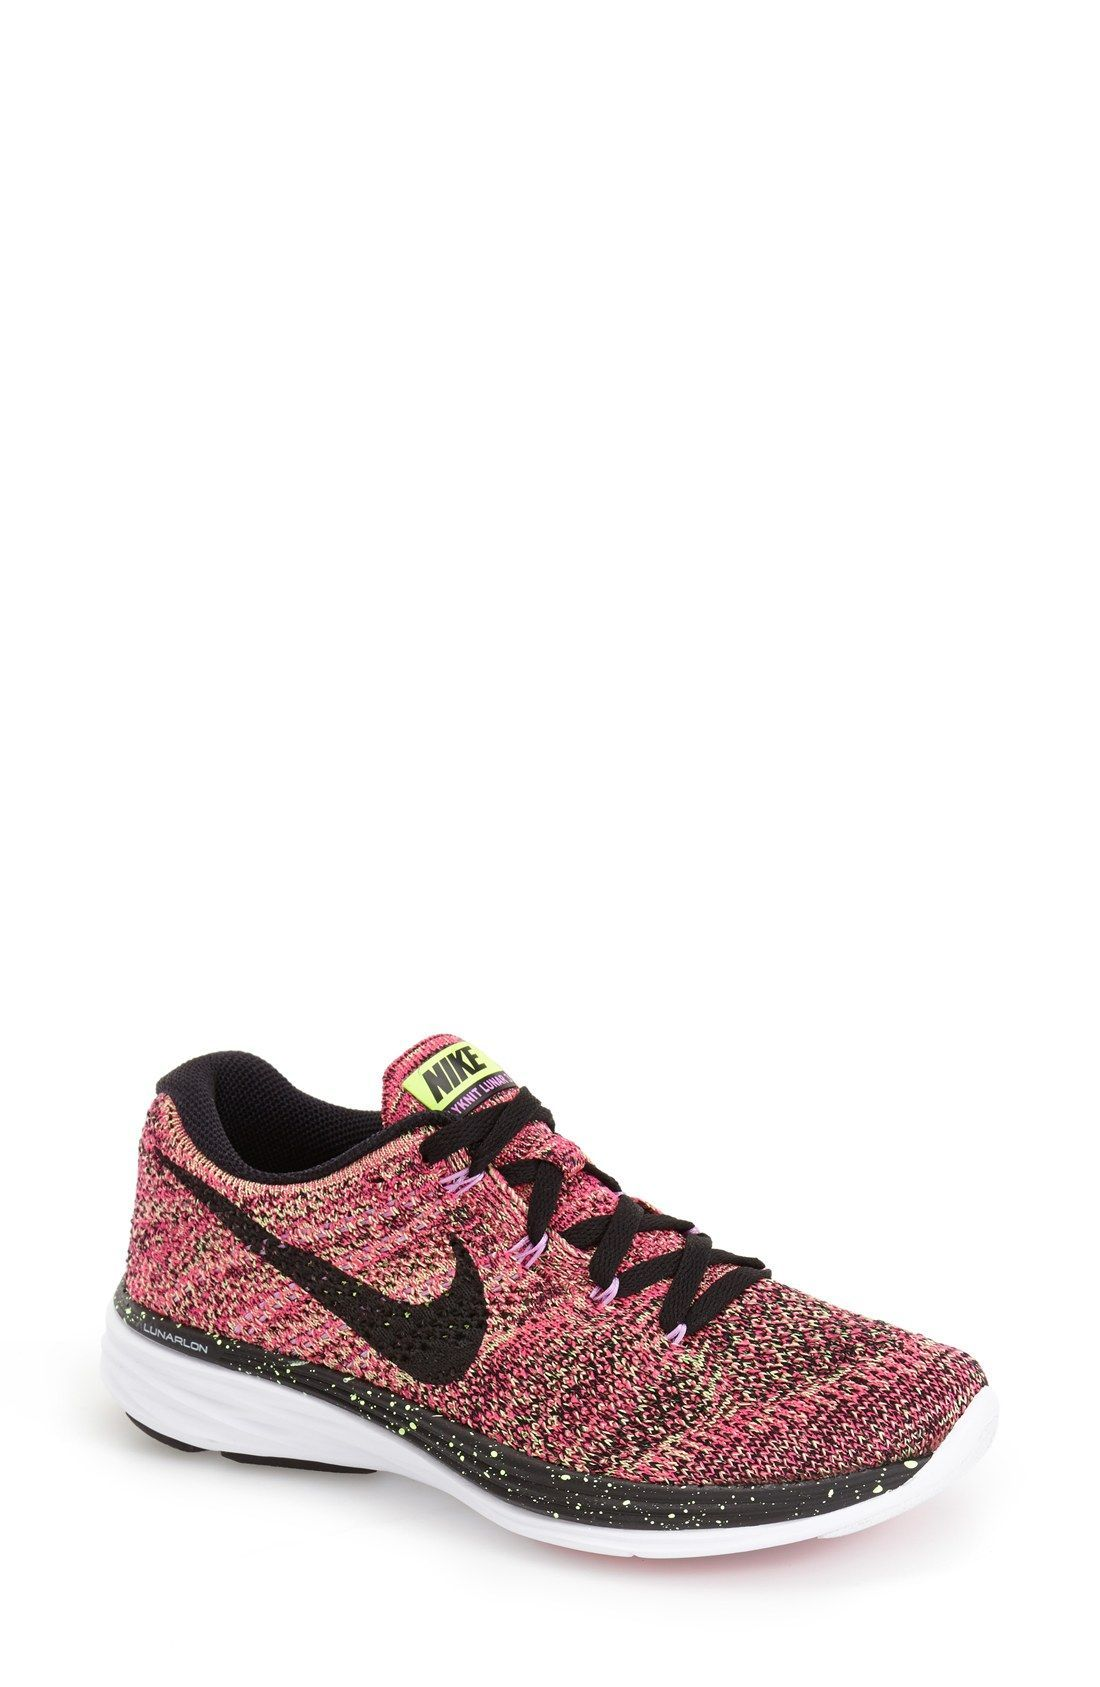 premium selection d51a2 f56bc Nike Flyknit Lunar 3 Running Shoe (Women)